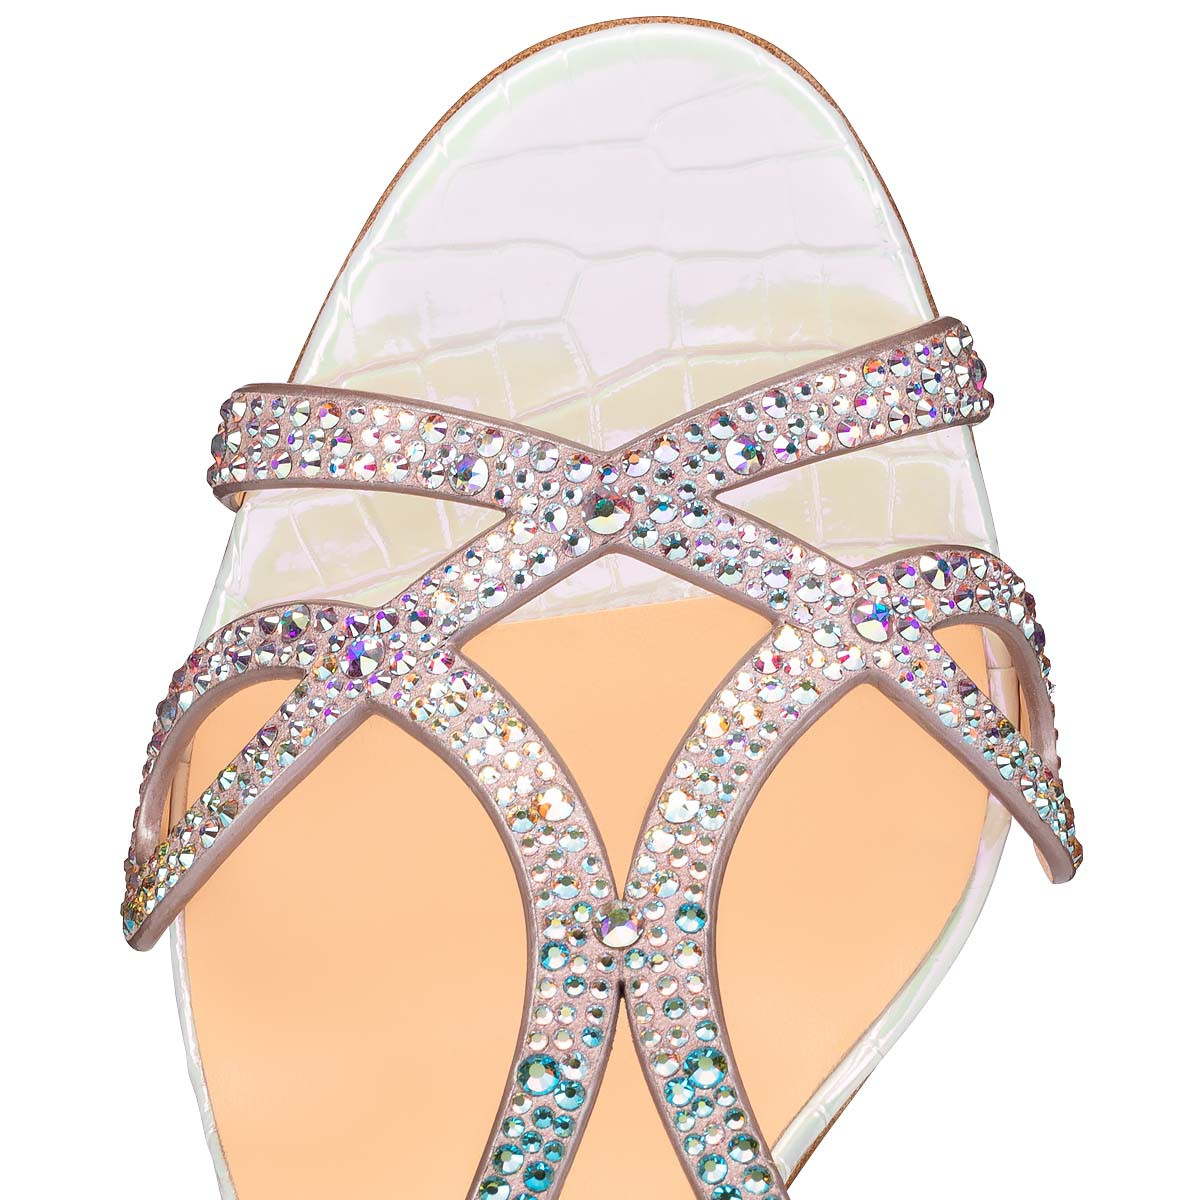 Shoes - Double L Sandal Strass - Christian Louboutin